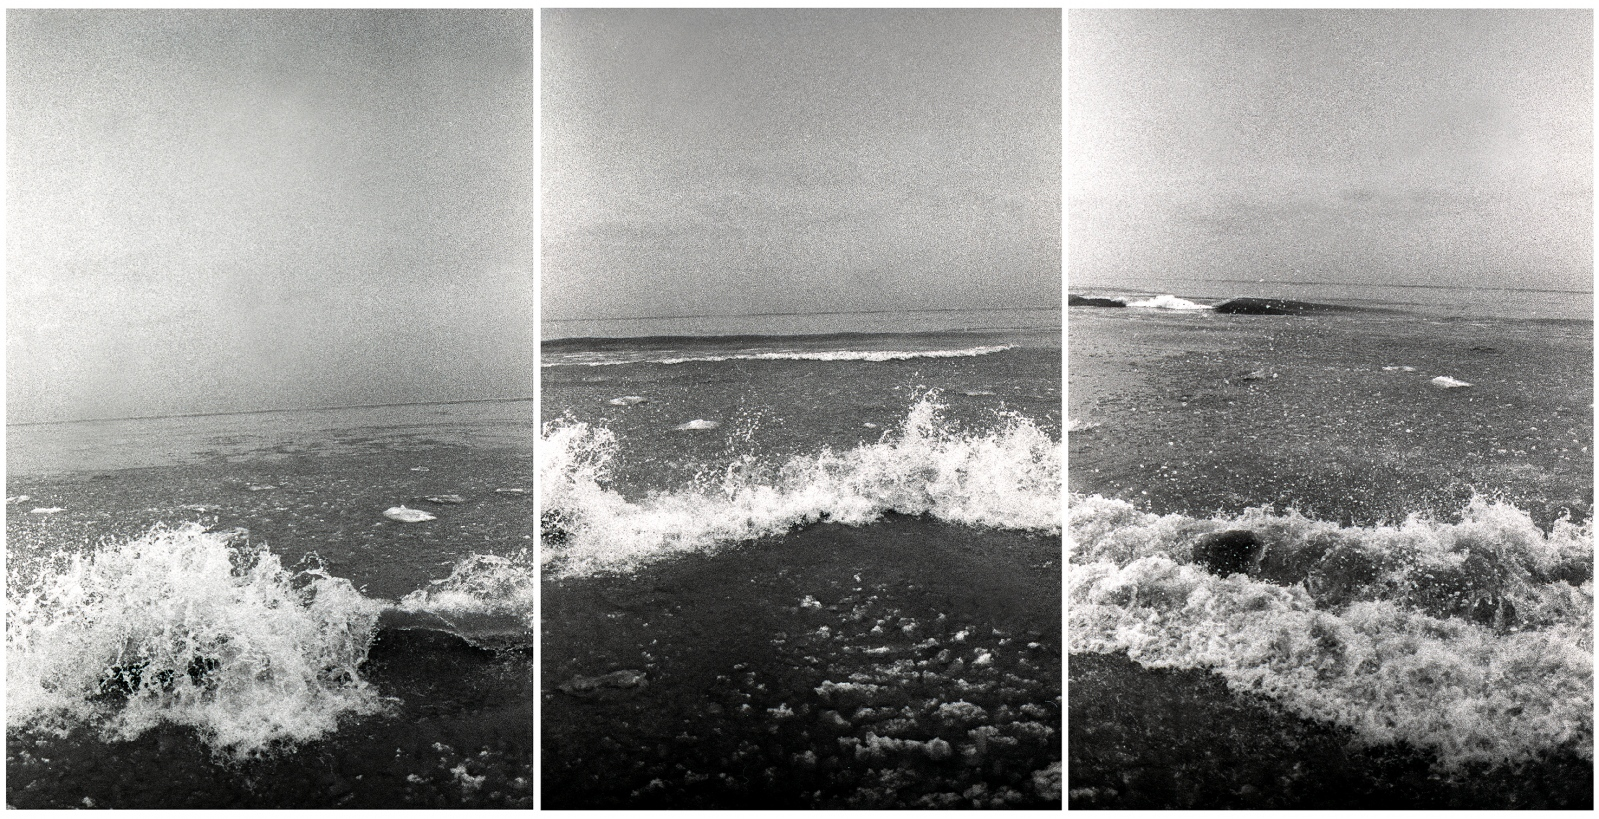 30seconds of Lake Michigan, 2014, 60.96 x 121.92 x .48cm (24 x 48 x 3/16in)  Image triptych on translucent acrylic.  Now Trending Exhibition at Palos Verdes Art Center, Ranchos Palos Verdes, California.